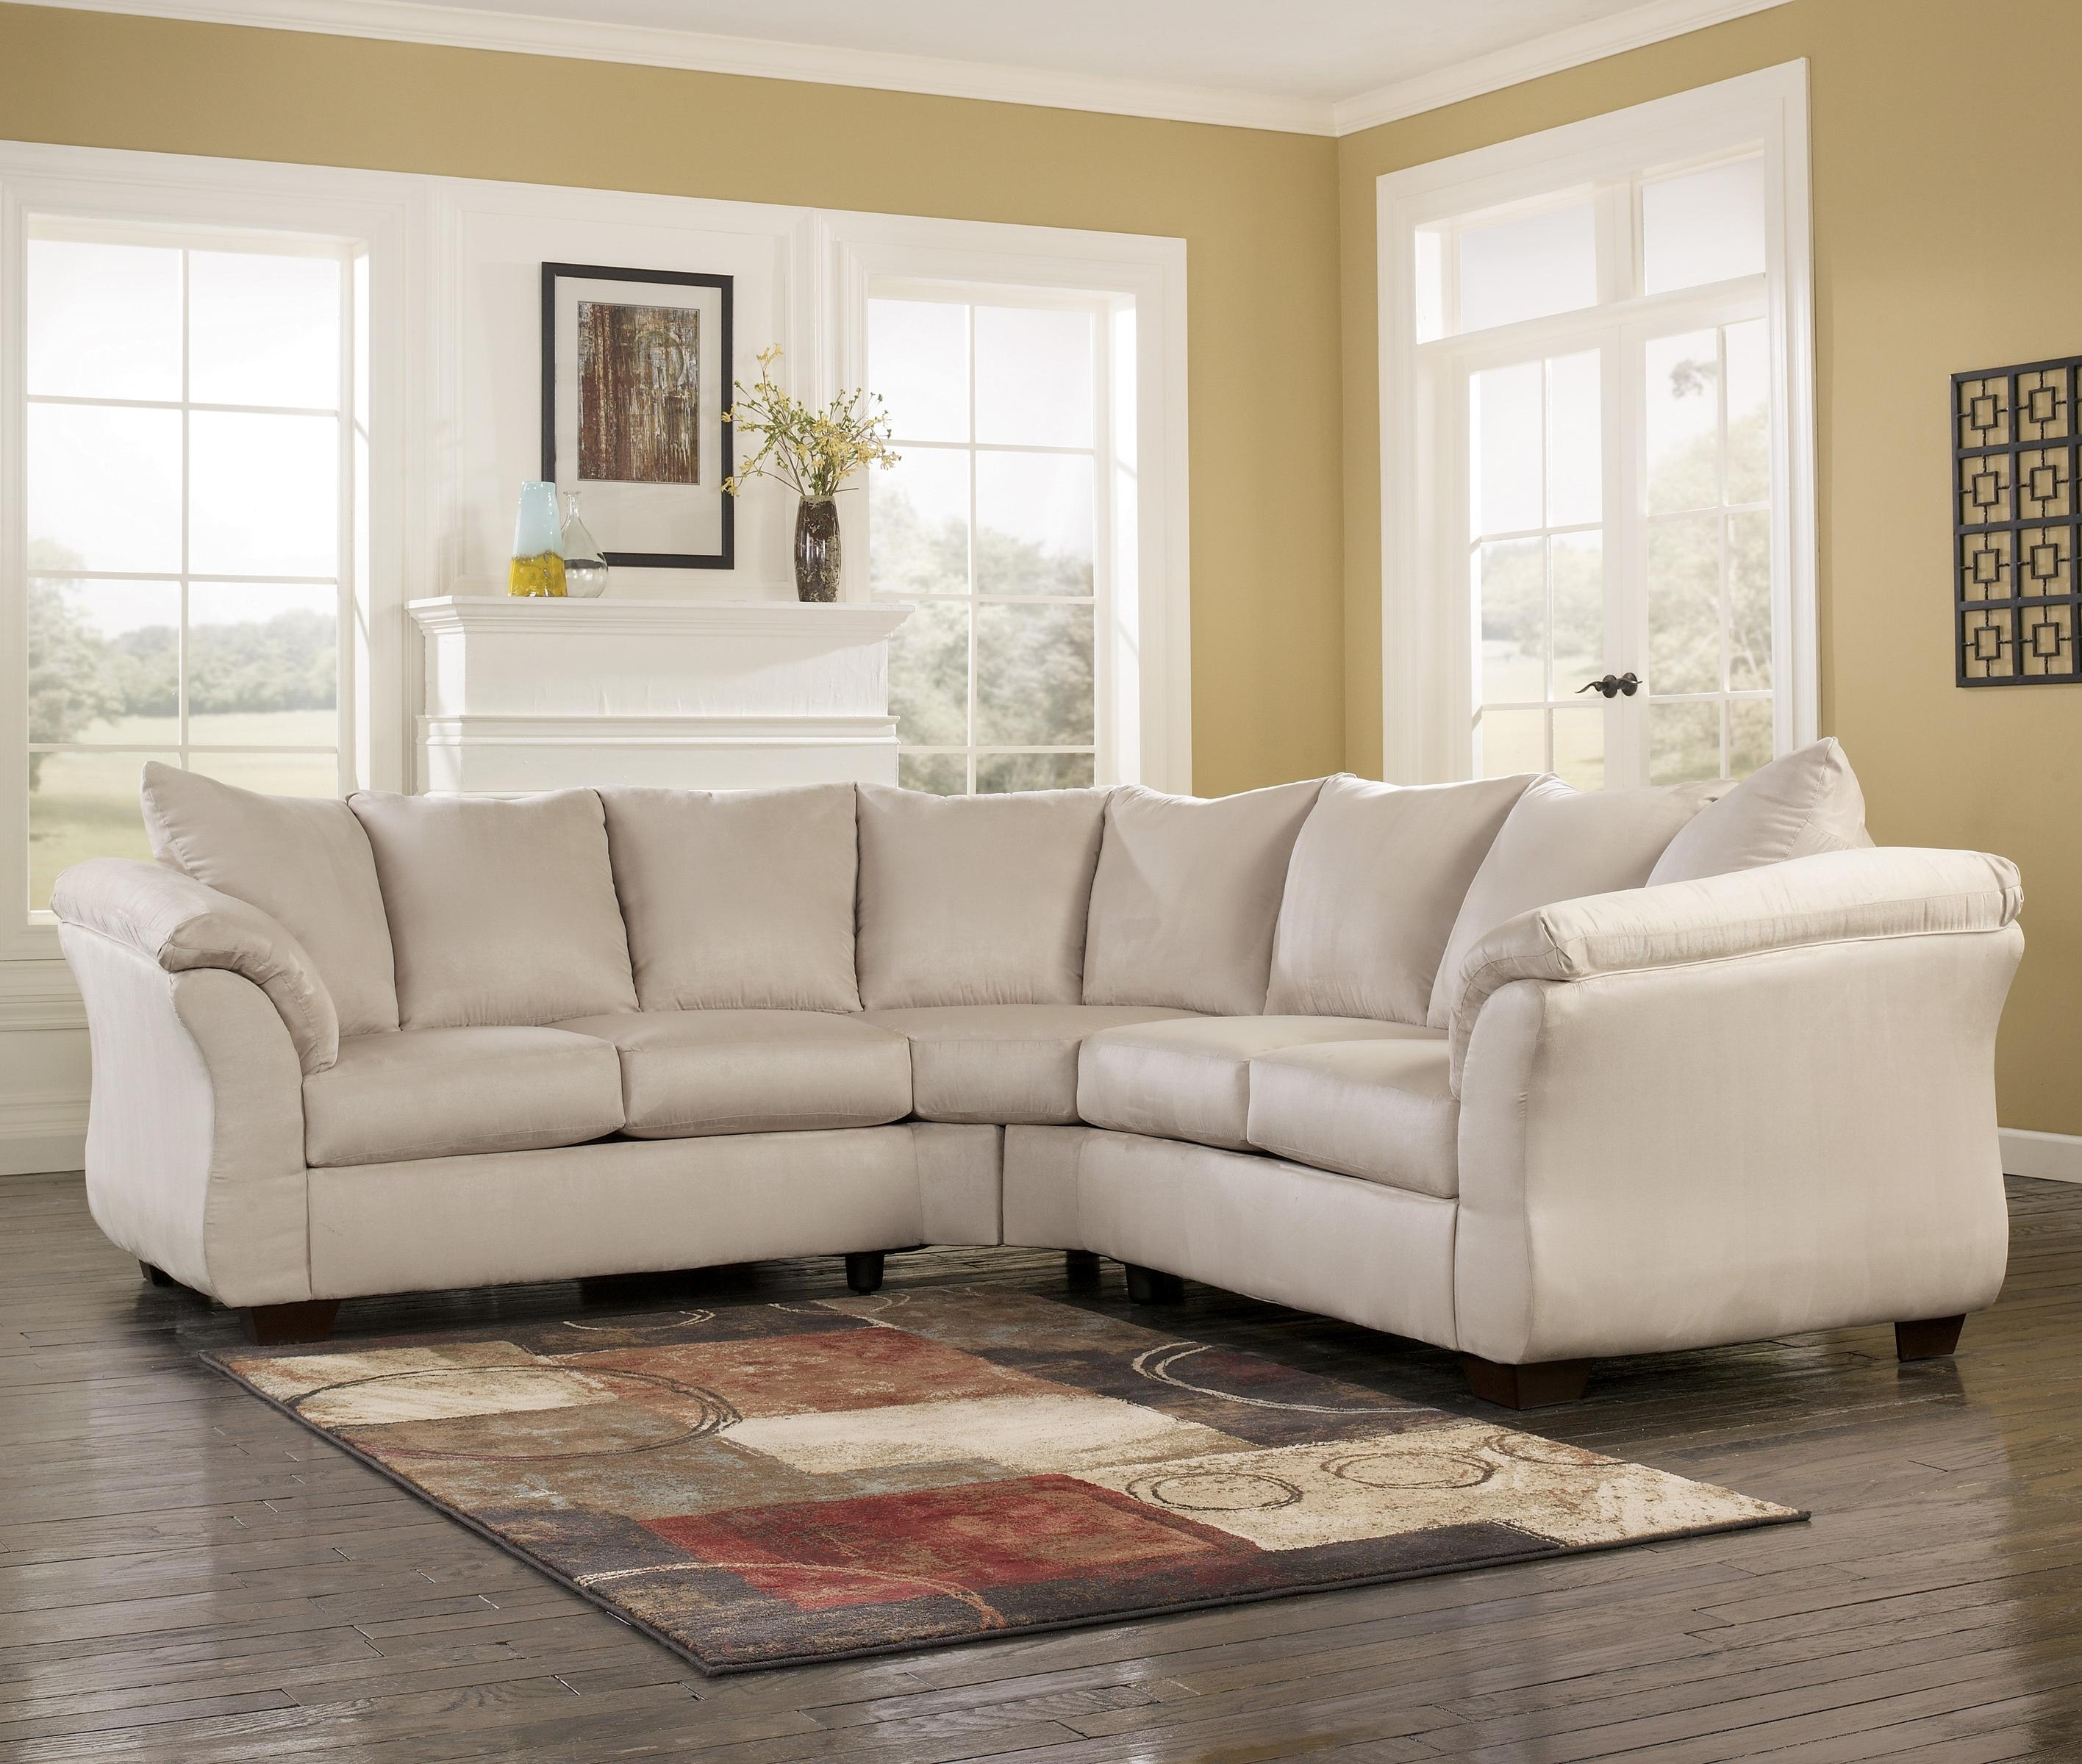 Furniture El Paso Tx – Home Design Ideas And Pictures Inside El Paso Tx Sectional Sofas (View 5 of 10)